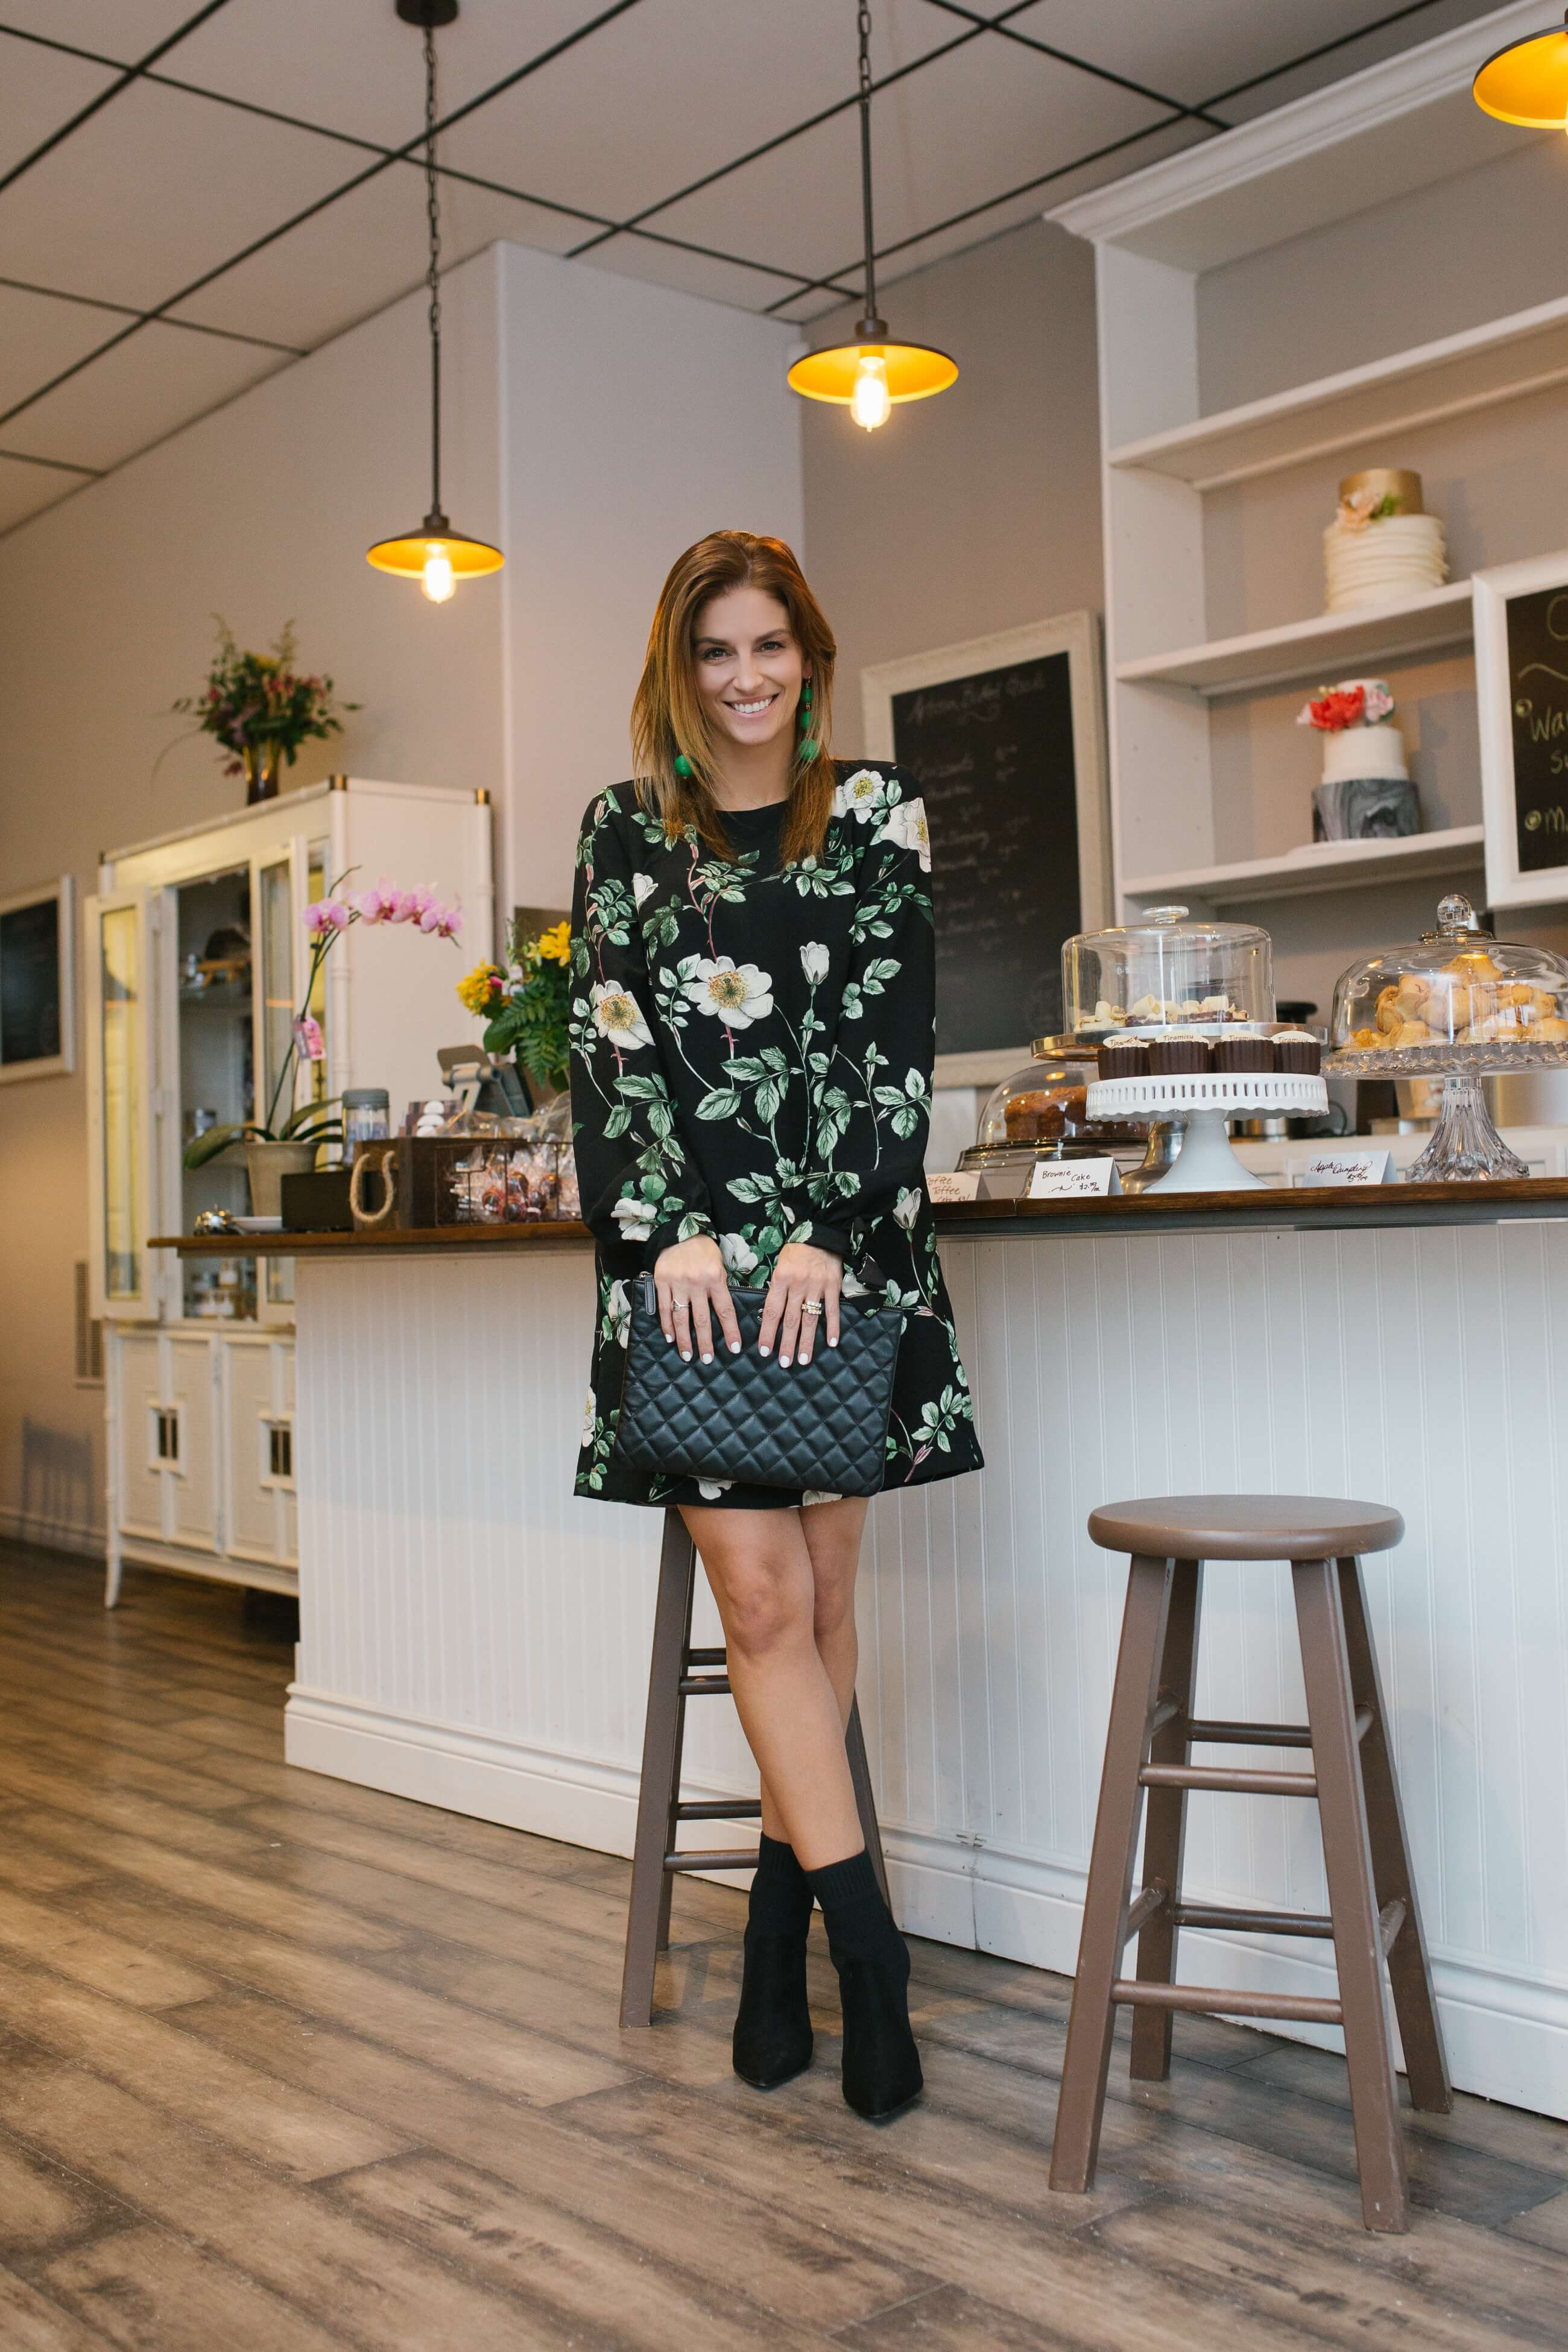 H&M Long sleeved floral dress, sock booties, quilted chanel clutch, green drop earrings; sparkleshinylove Mandy Furnis; M&R Cakes and Cafe